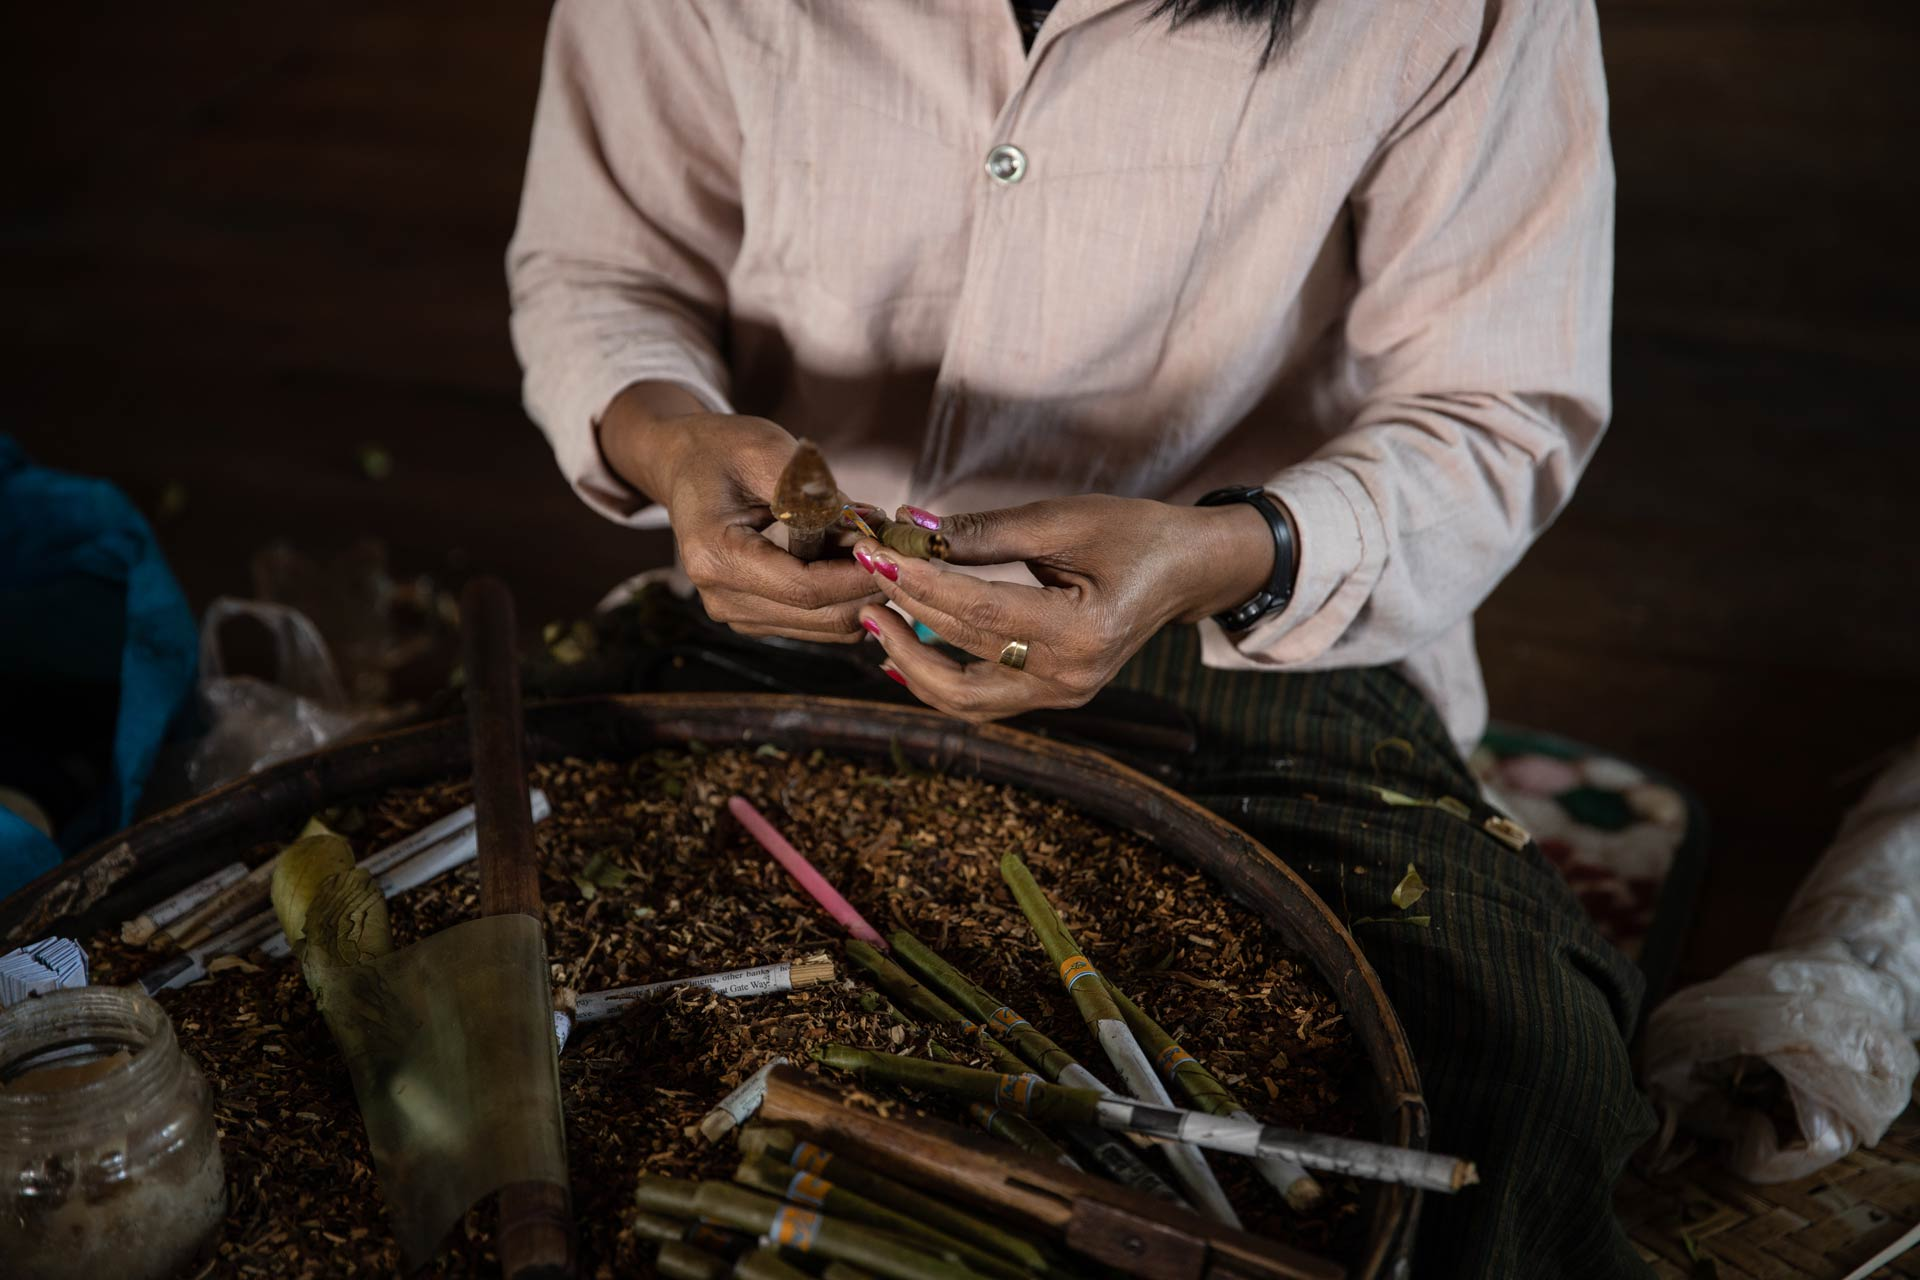 Handcraft cigars creation around Inle Lake